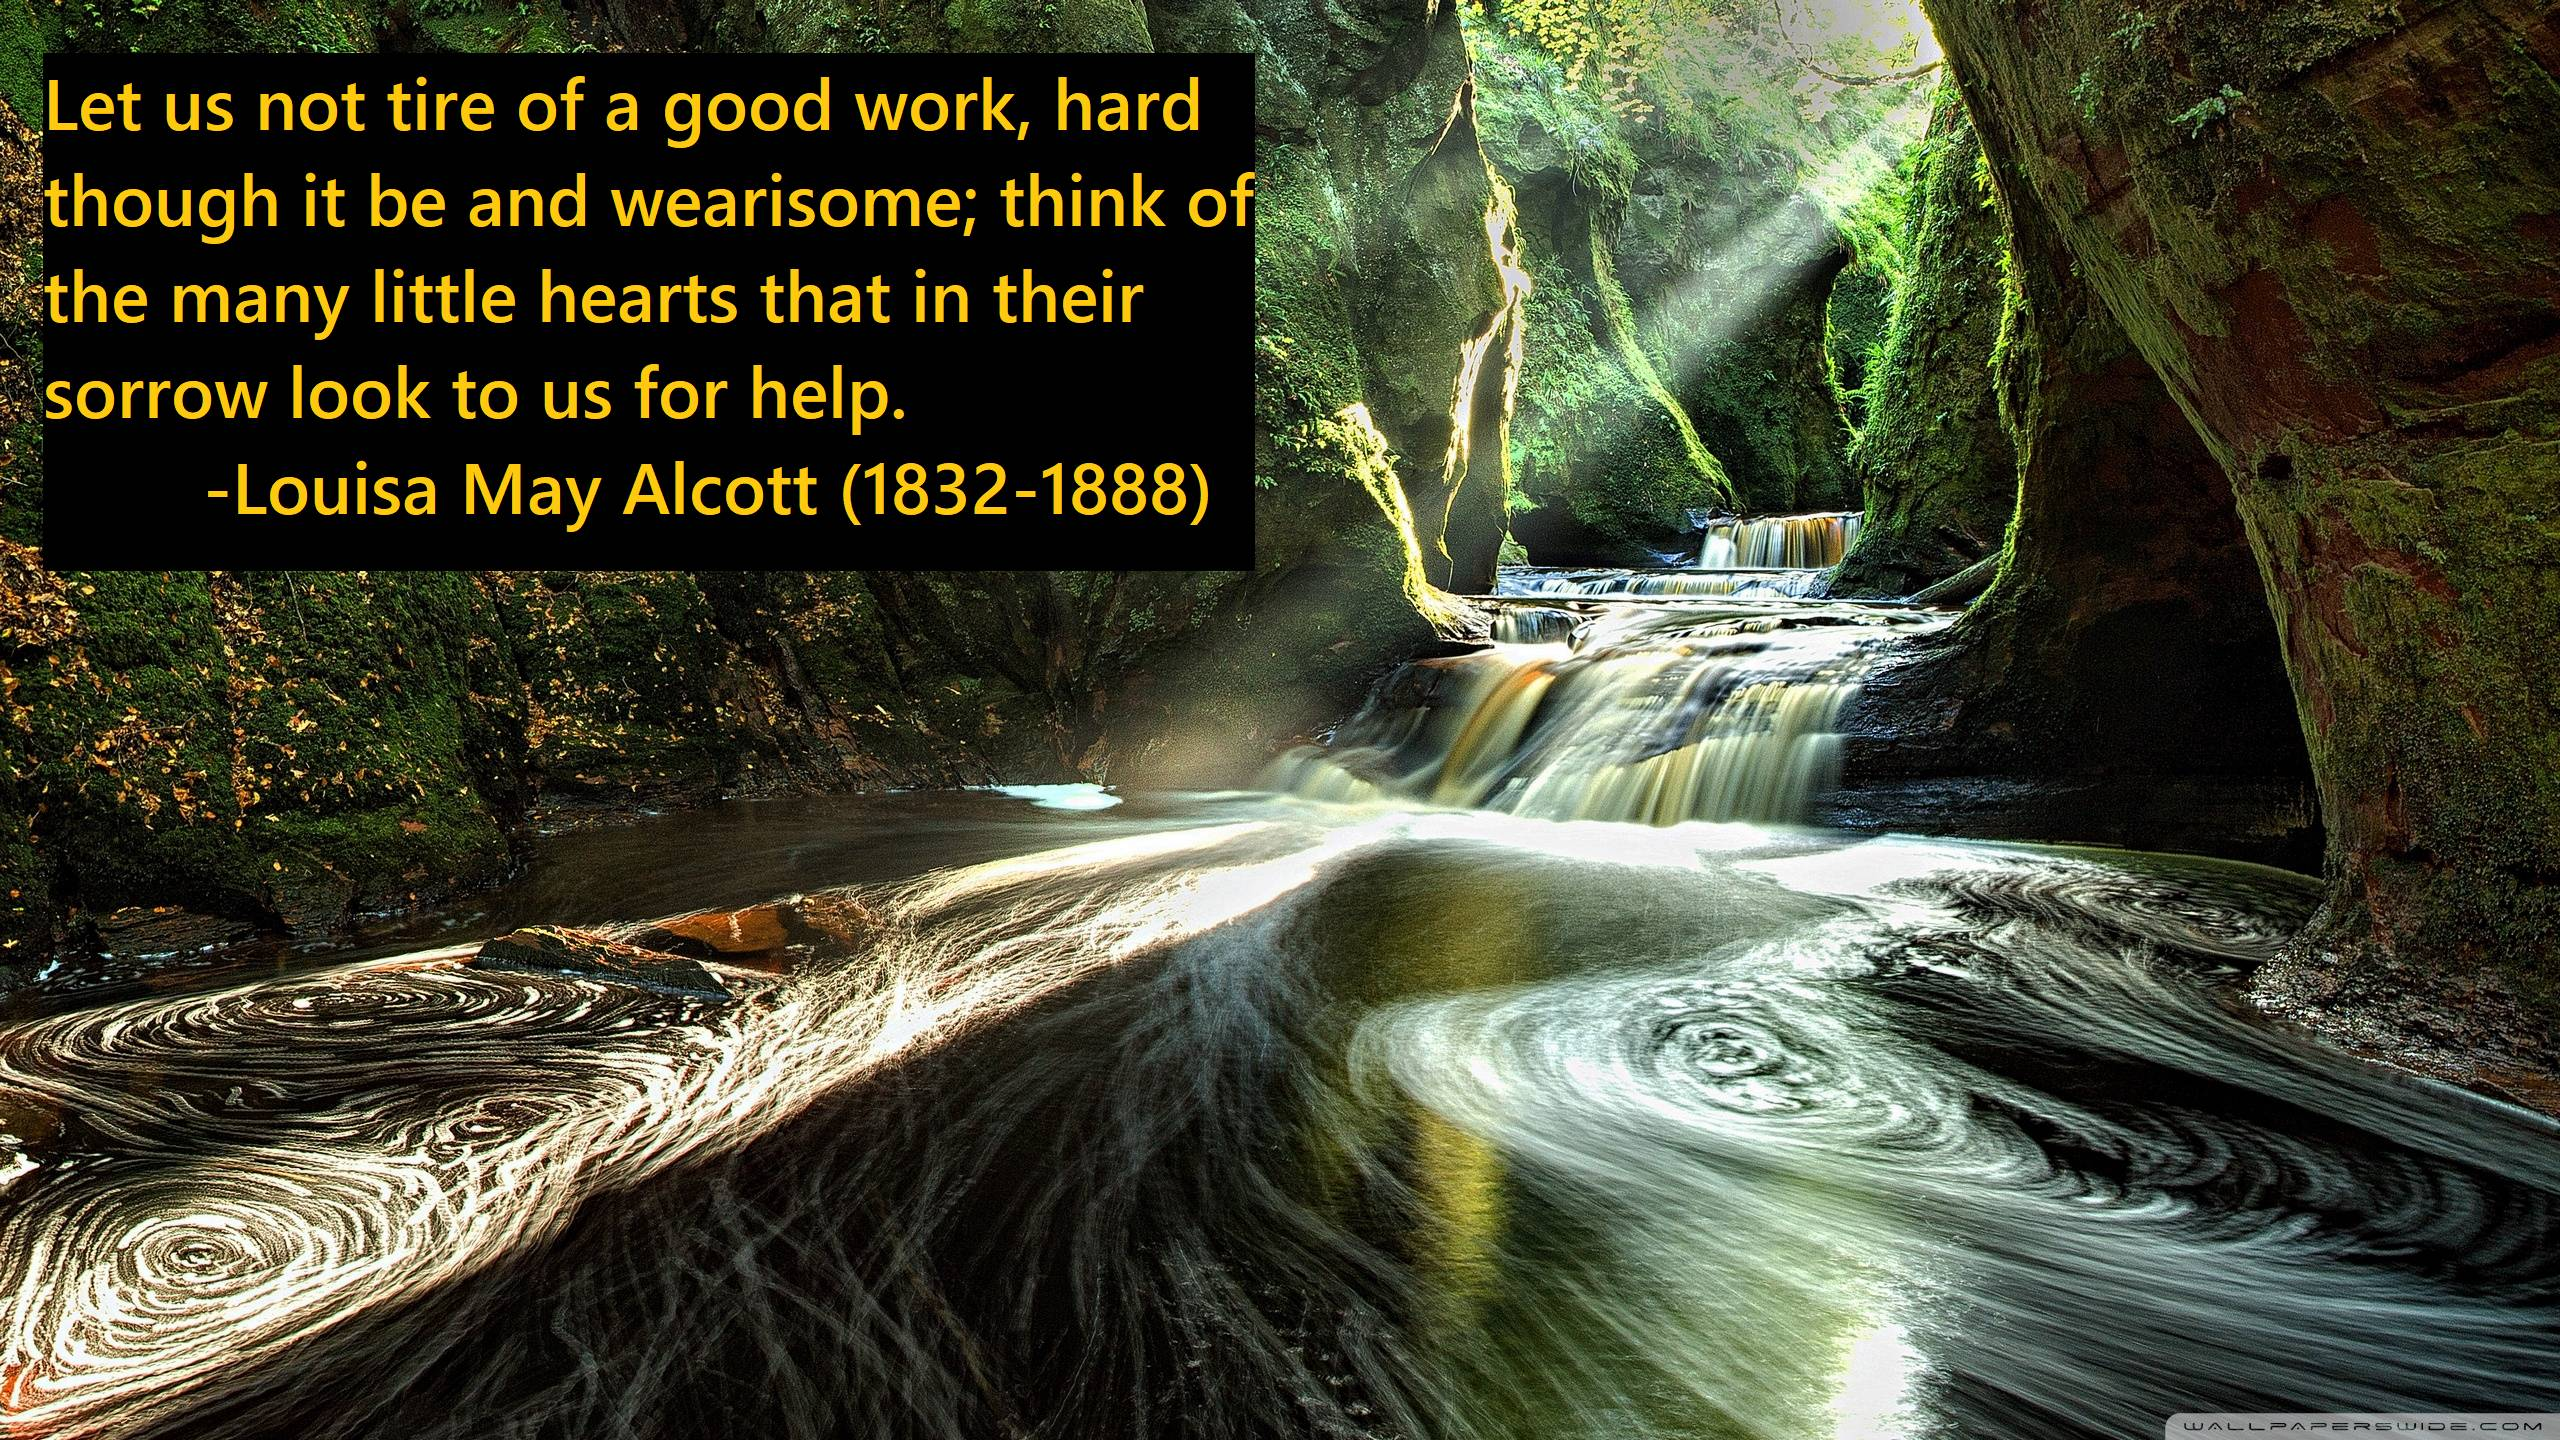 """Let us not tire of a good work, hard though it be and wearisome; think of the many little hearts that in their sorrow look to us for help."" – Louisa May Alcott (1832-1888) [2560×1440]"